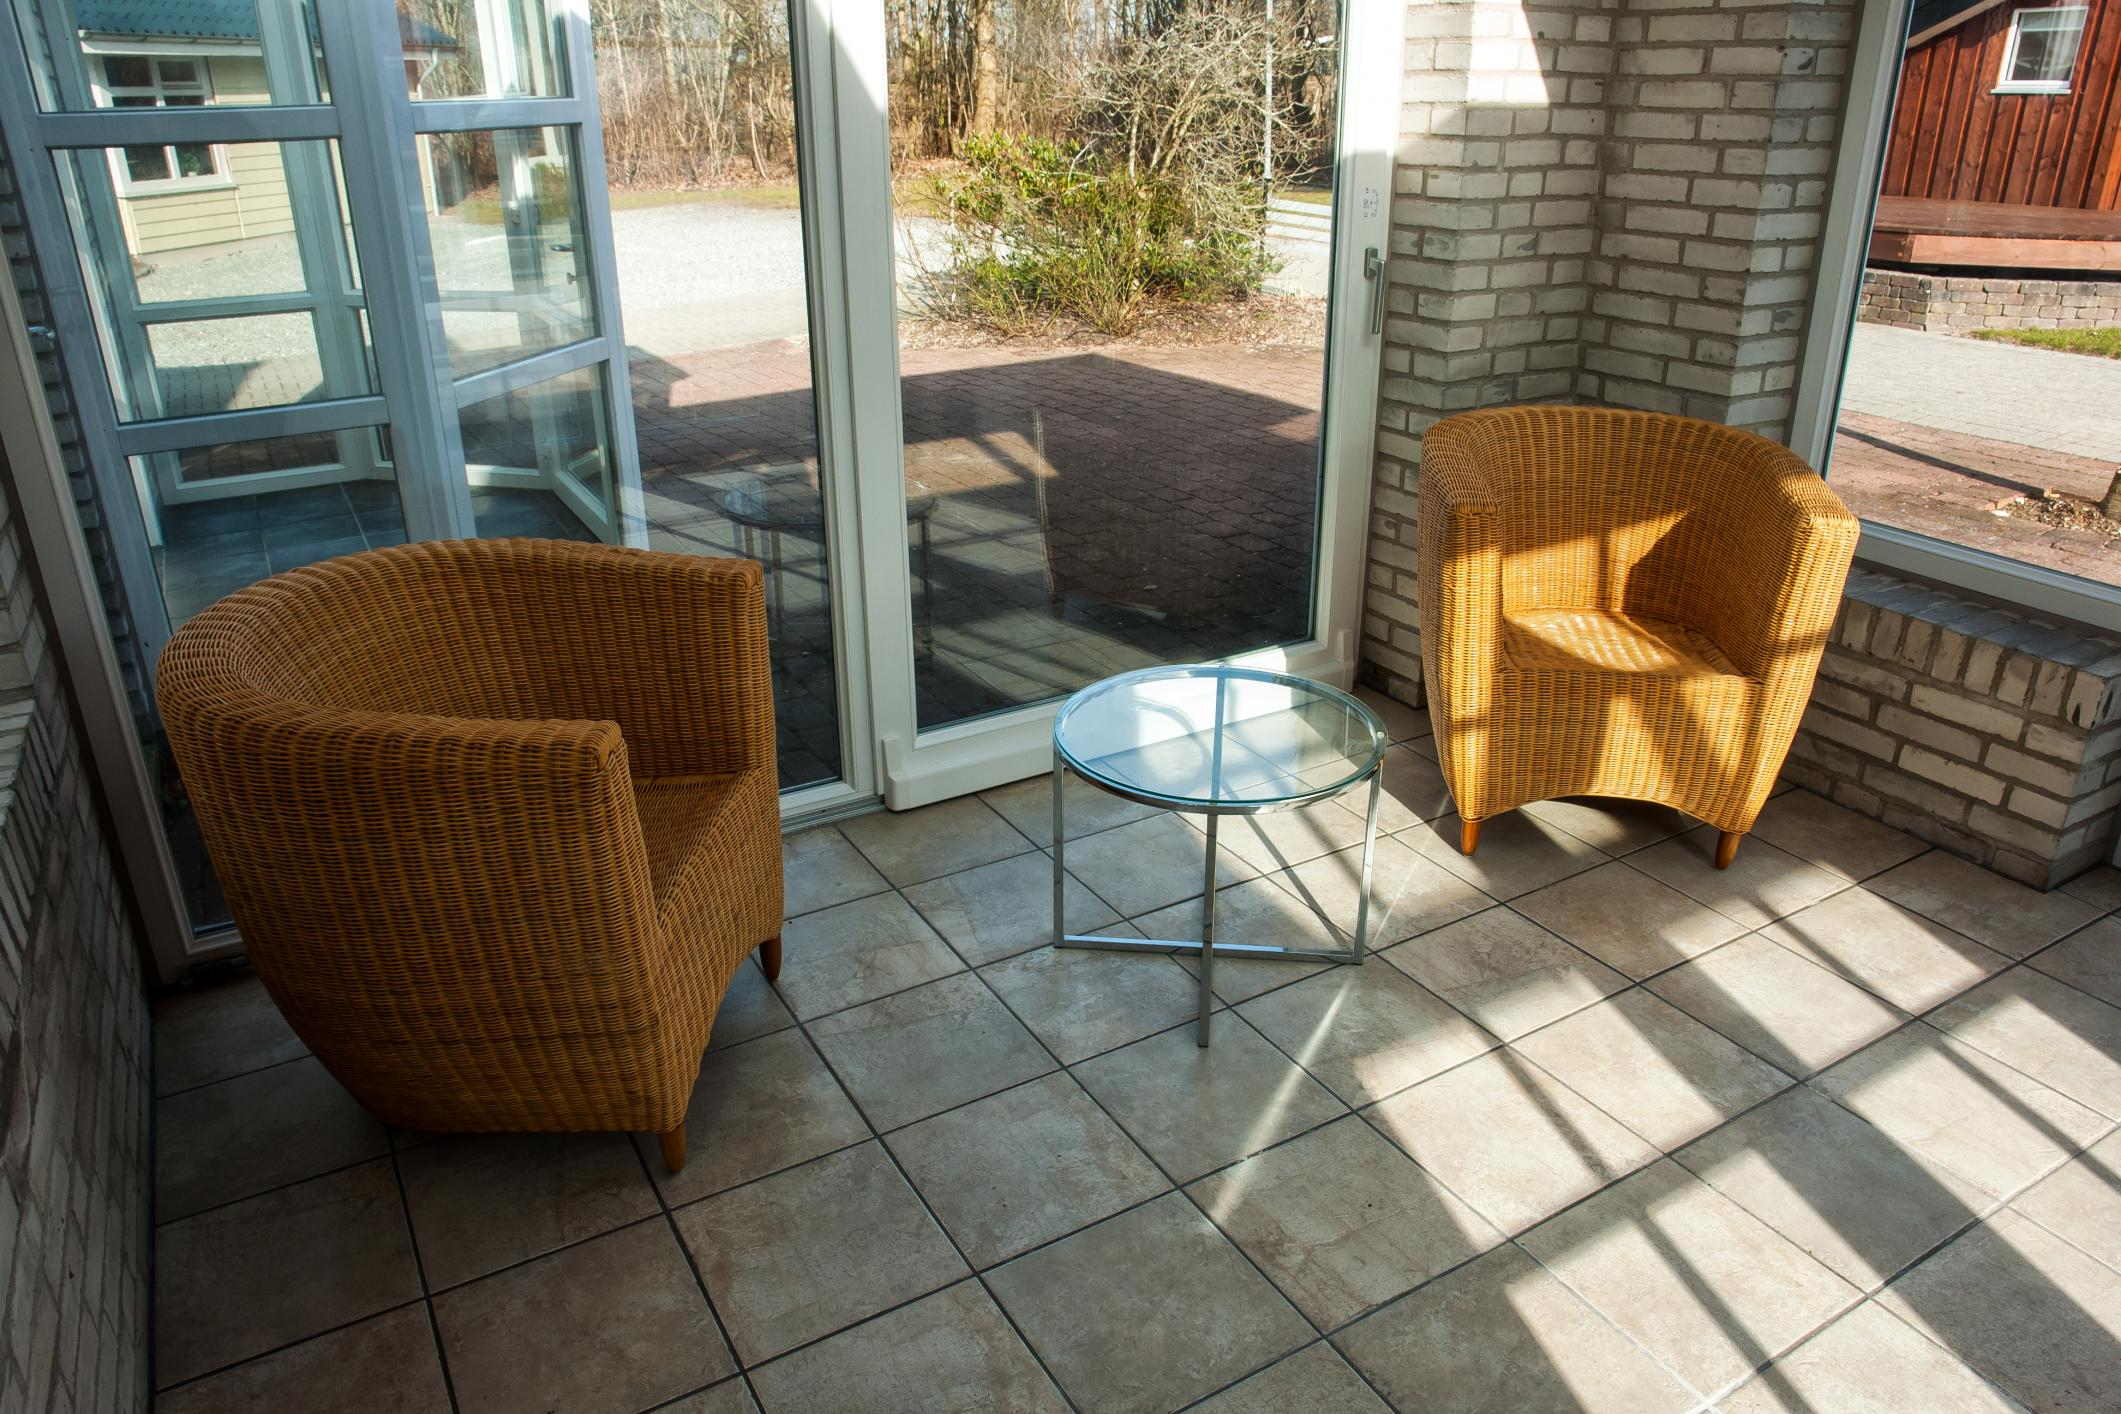 This is a picture of a sunroom.